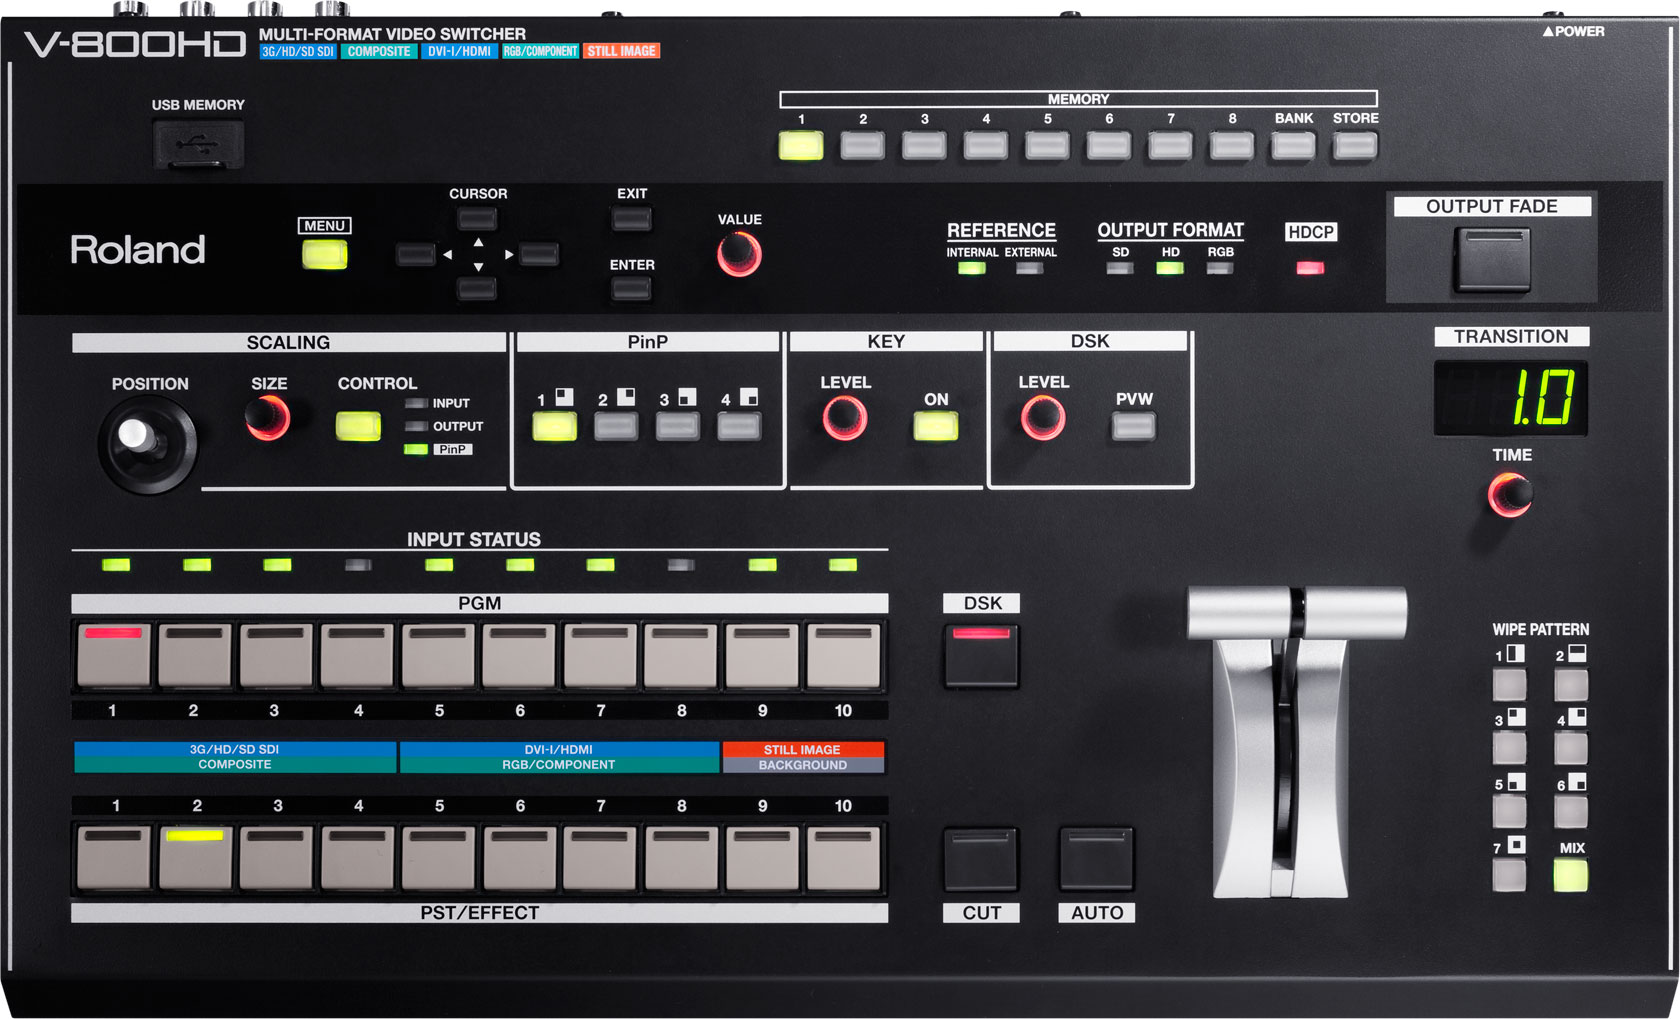 Roland Pro A V 800hd Multi Format Video Switcher Dictionary Of Electronic And Engineering Terms Audio Mixer Circuit